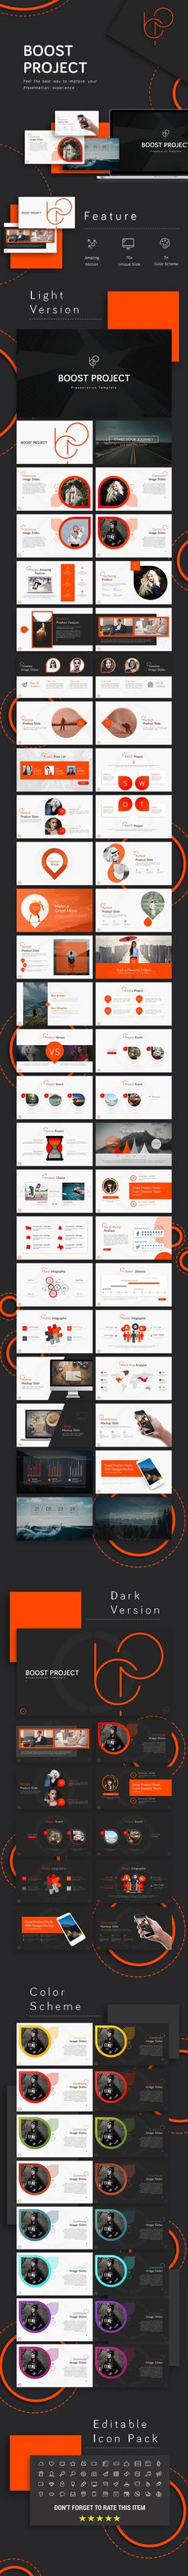 Buy Boost Project Powerpoint Template by RRgraph on GraphicRiver. Overview : Boost Project – Powerpoint Presentation Template is a modern Presentation that is beautifully designed an. Powerpoint Design, Business Powerpoint Templates, Powerpoint Presentation Templates, Keynote Template, Powerpoint Presentations, Presentation Slides, Business Presentation, Presentation Design, Project Presentation